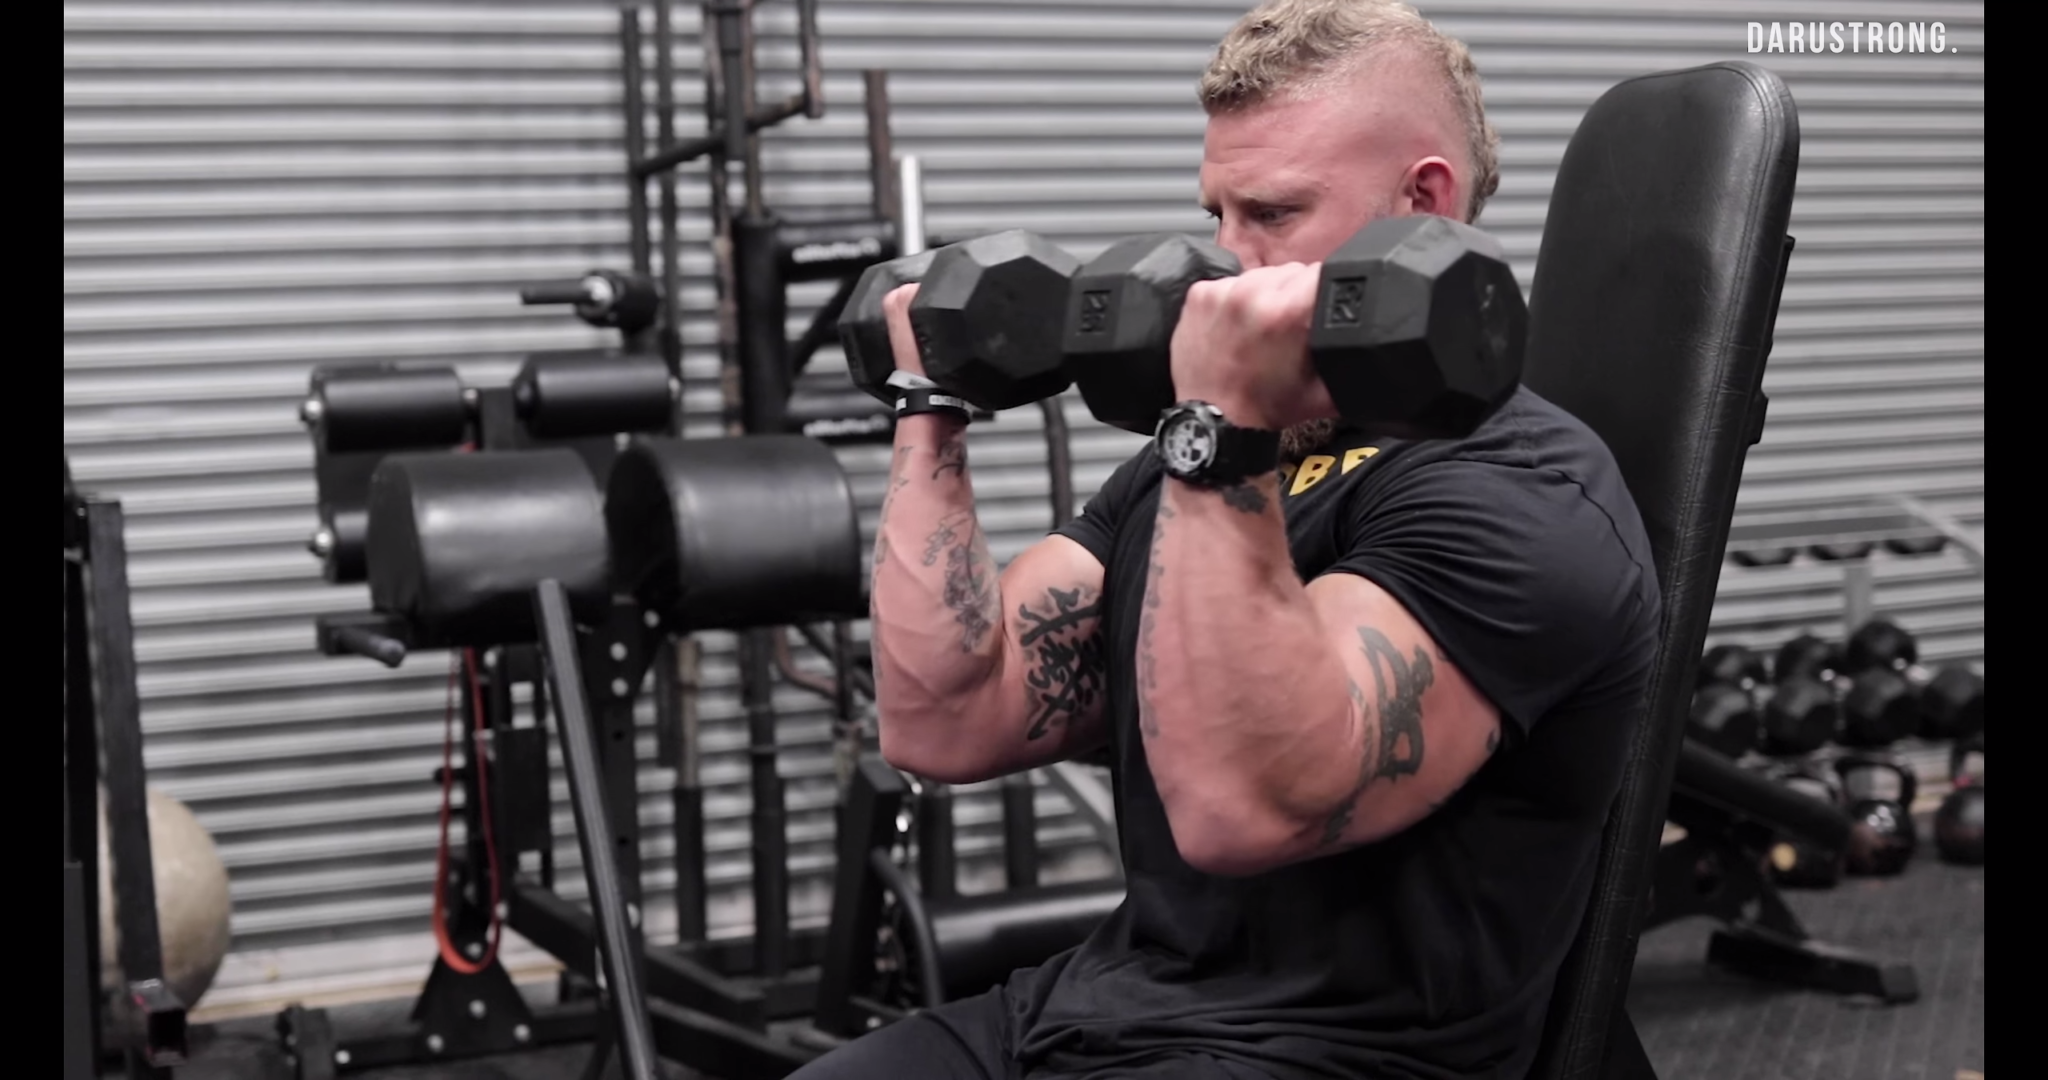 4 Arm Exercises to Increase Punching Power 7